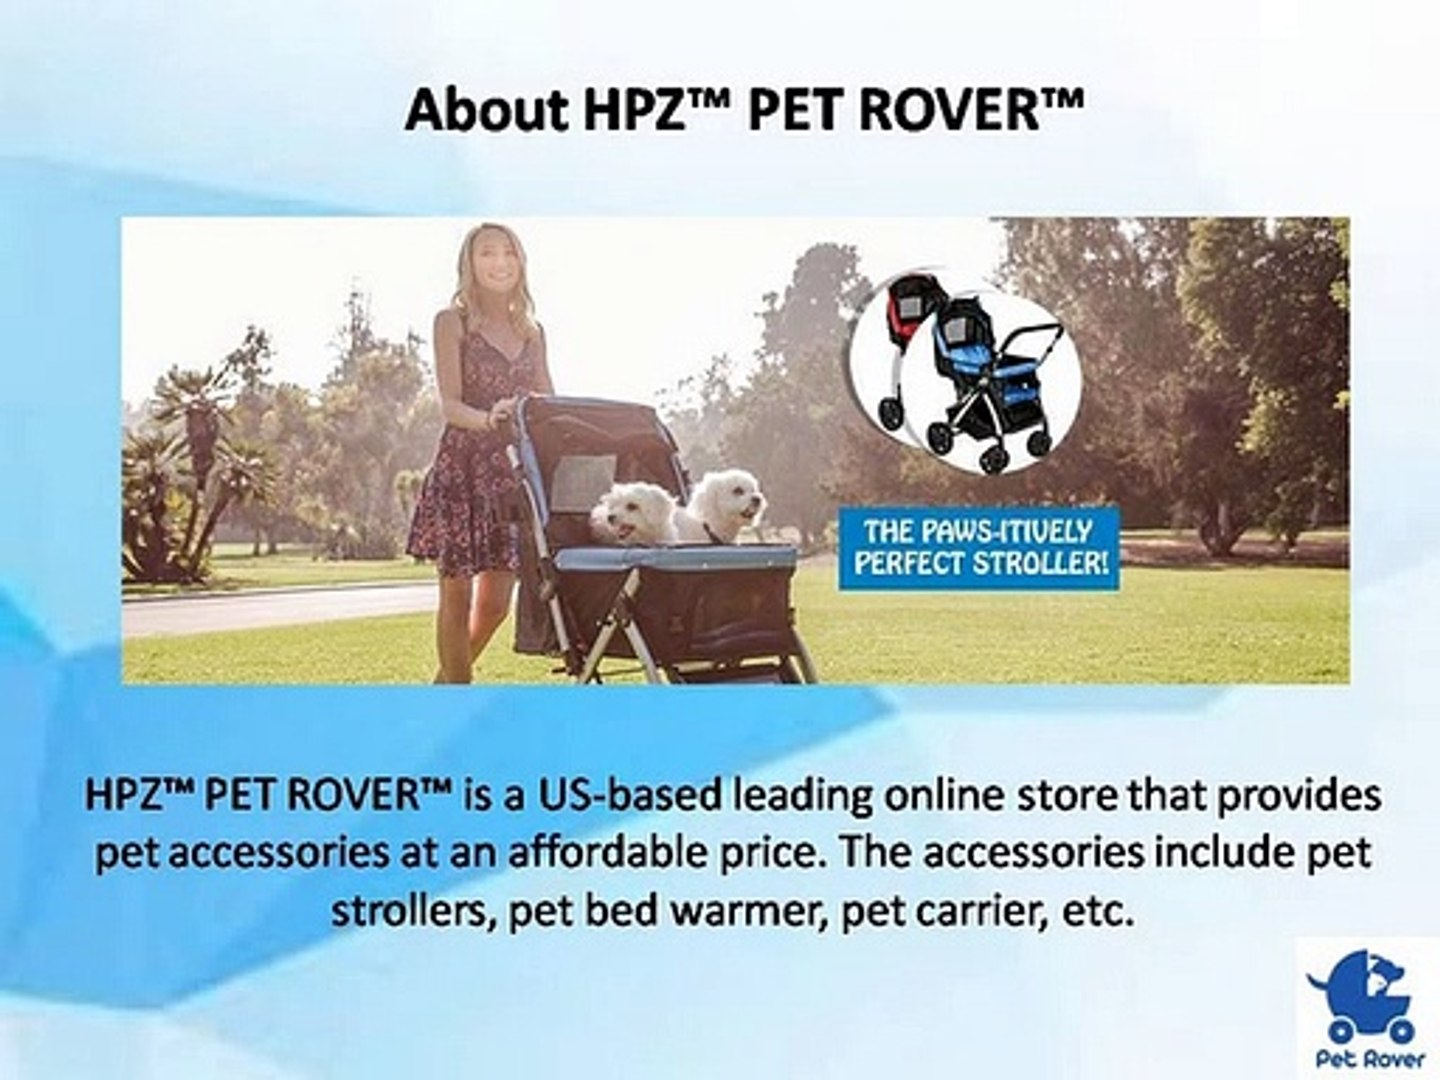 Get affordable and quality Pet Stroller provided by HPZ Pet Rover